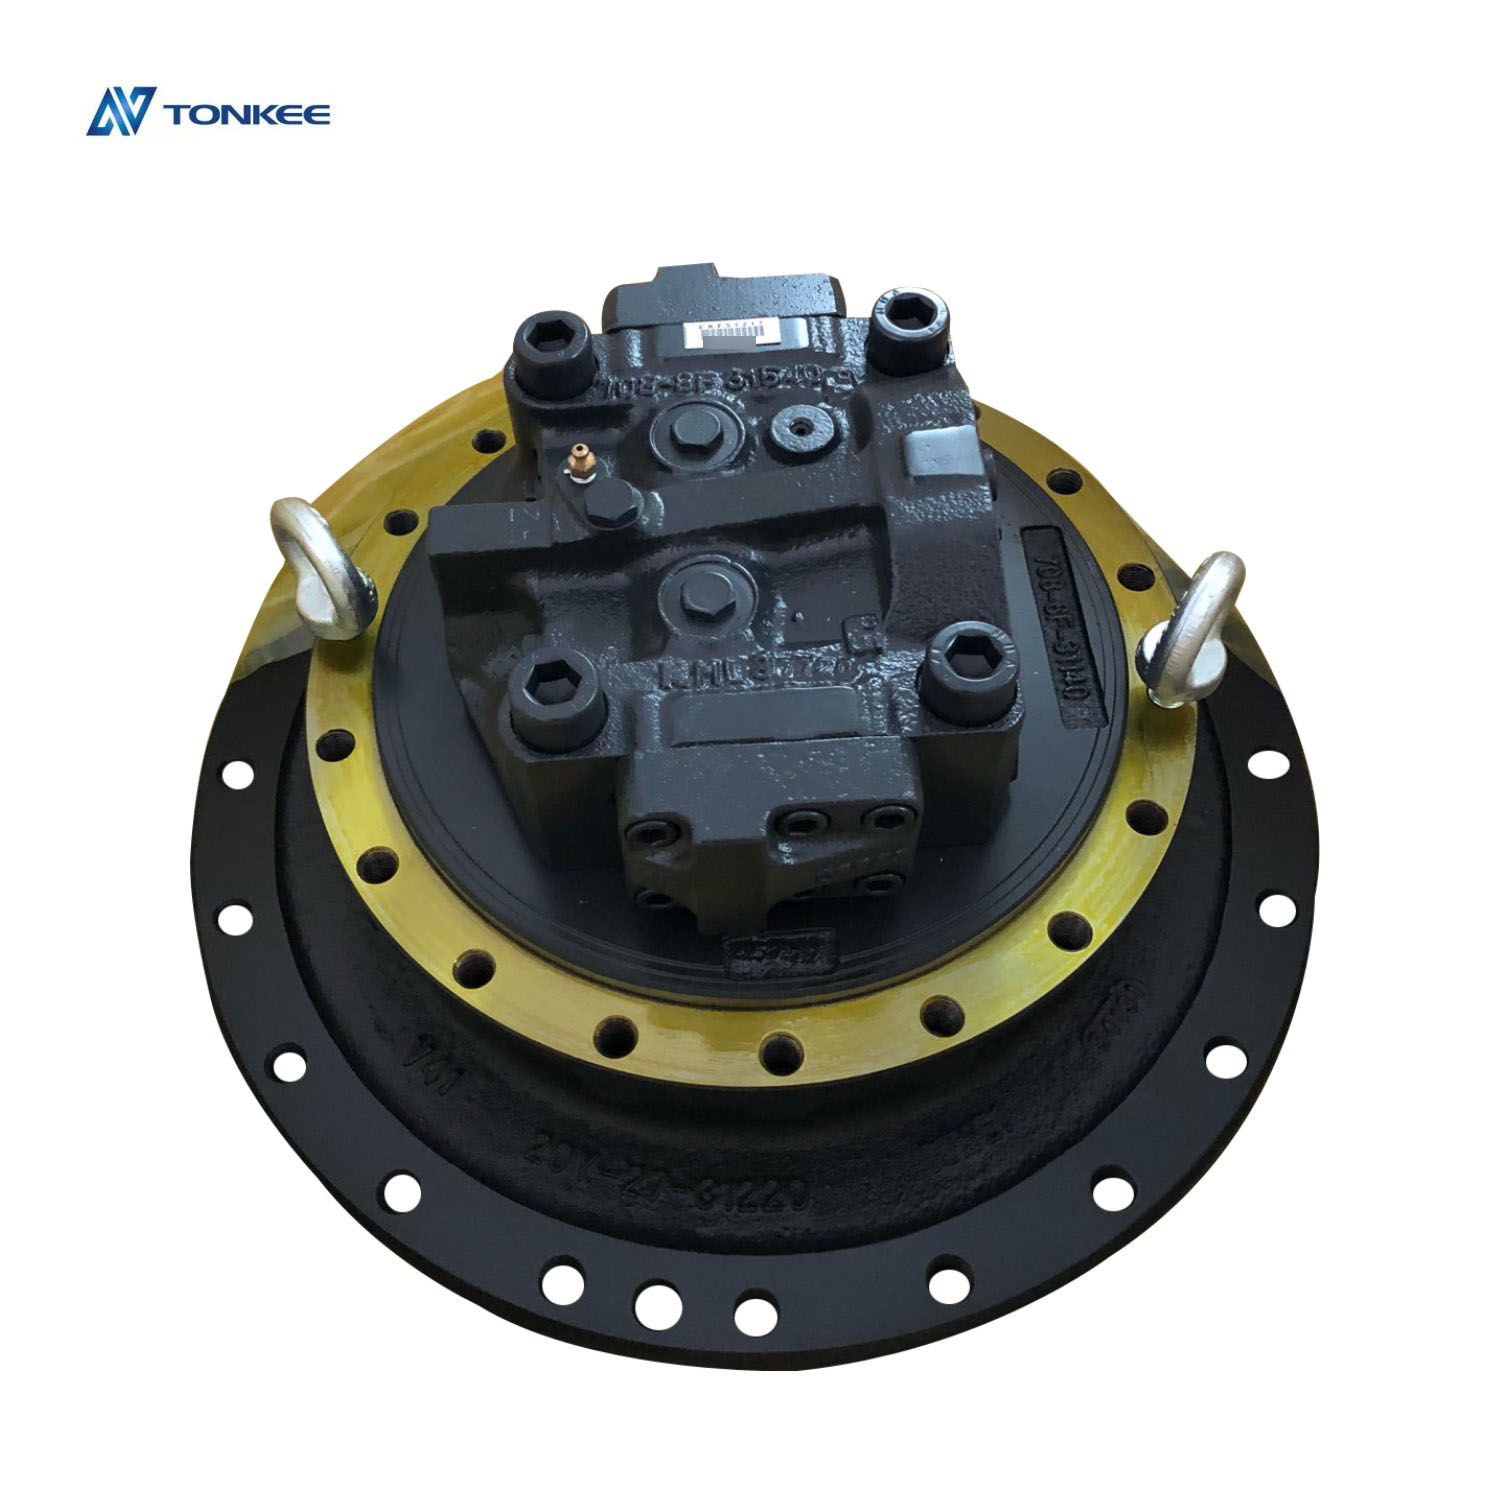 NEW 708-8F-31540 708-8F-31140 final drive group PC200-7 PC200-8 travel motor assy excavator hydraulic travel device